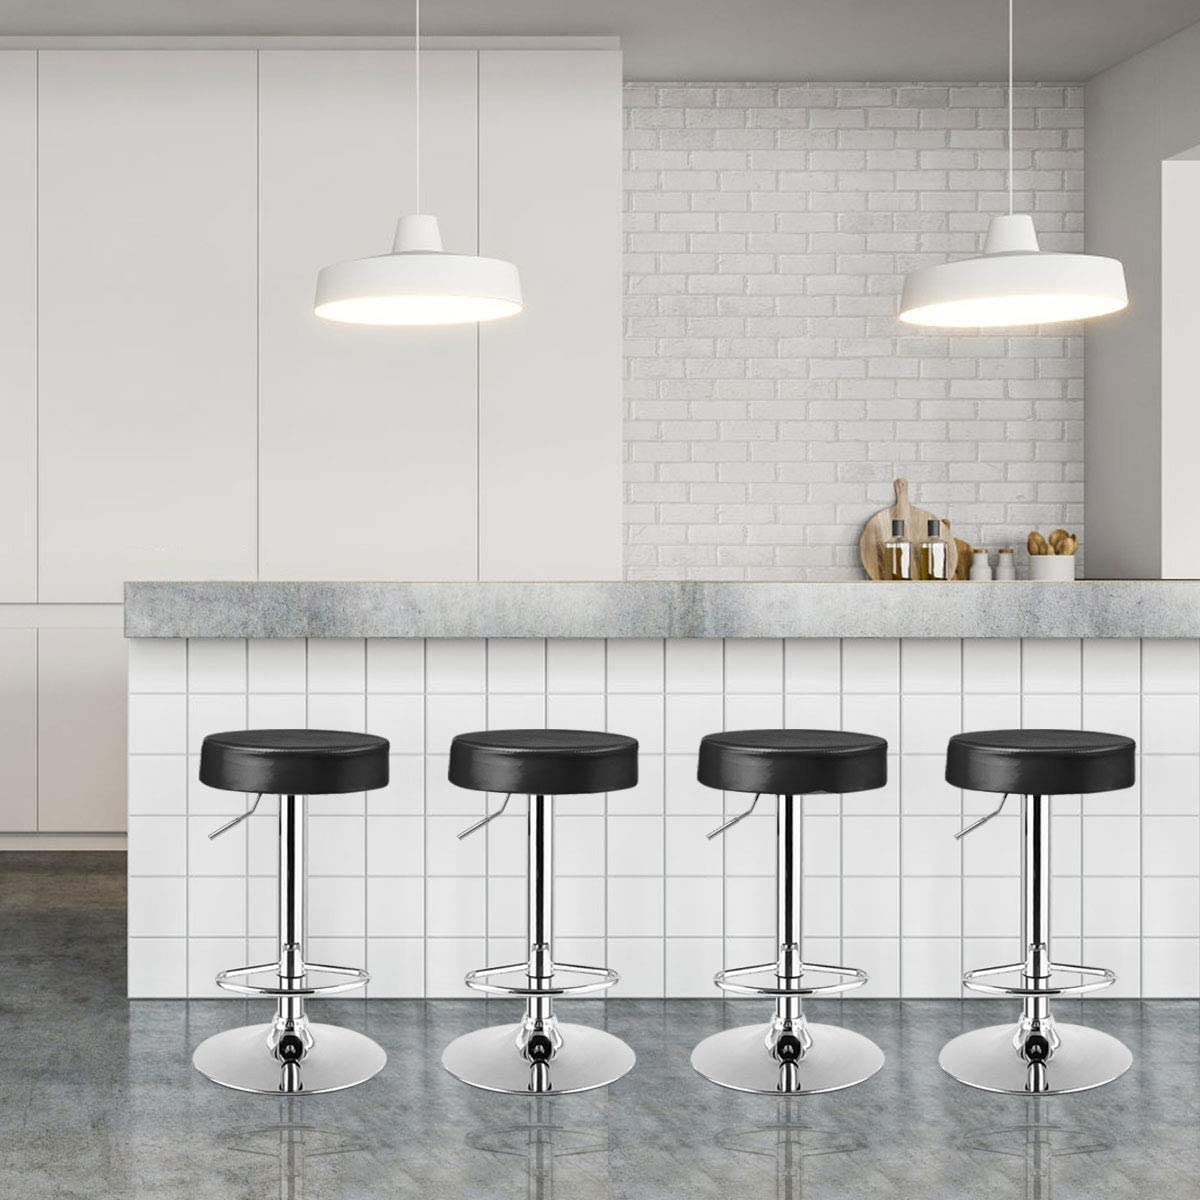 COSTWAY Bar Stool, Modern Swivel Backless Round Barstool, PU Leather Armless bar Chair with Height Adjustable, Chrome Footrest, Sturdy Metal Frame for Kitchen Dining Living Bistro Pub 4 pcs, Black